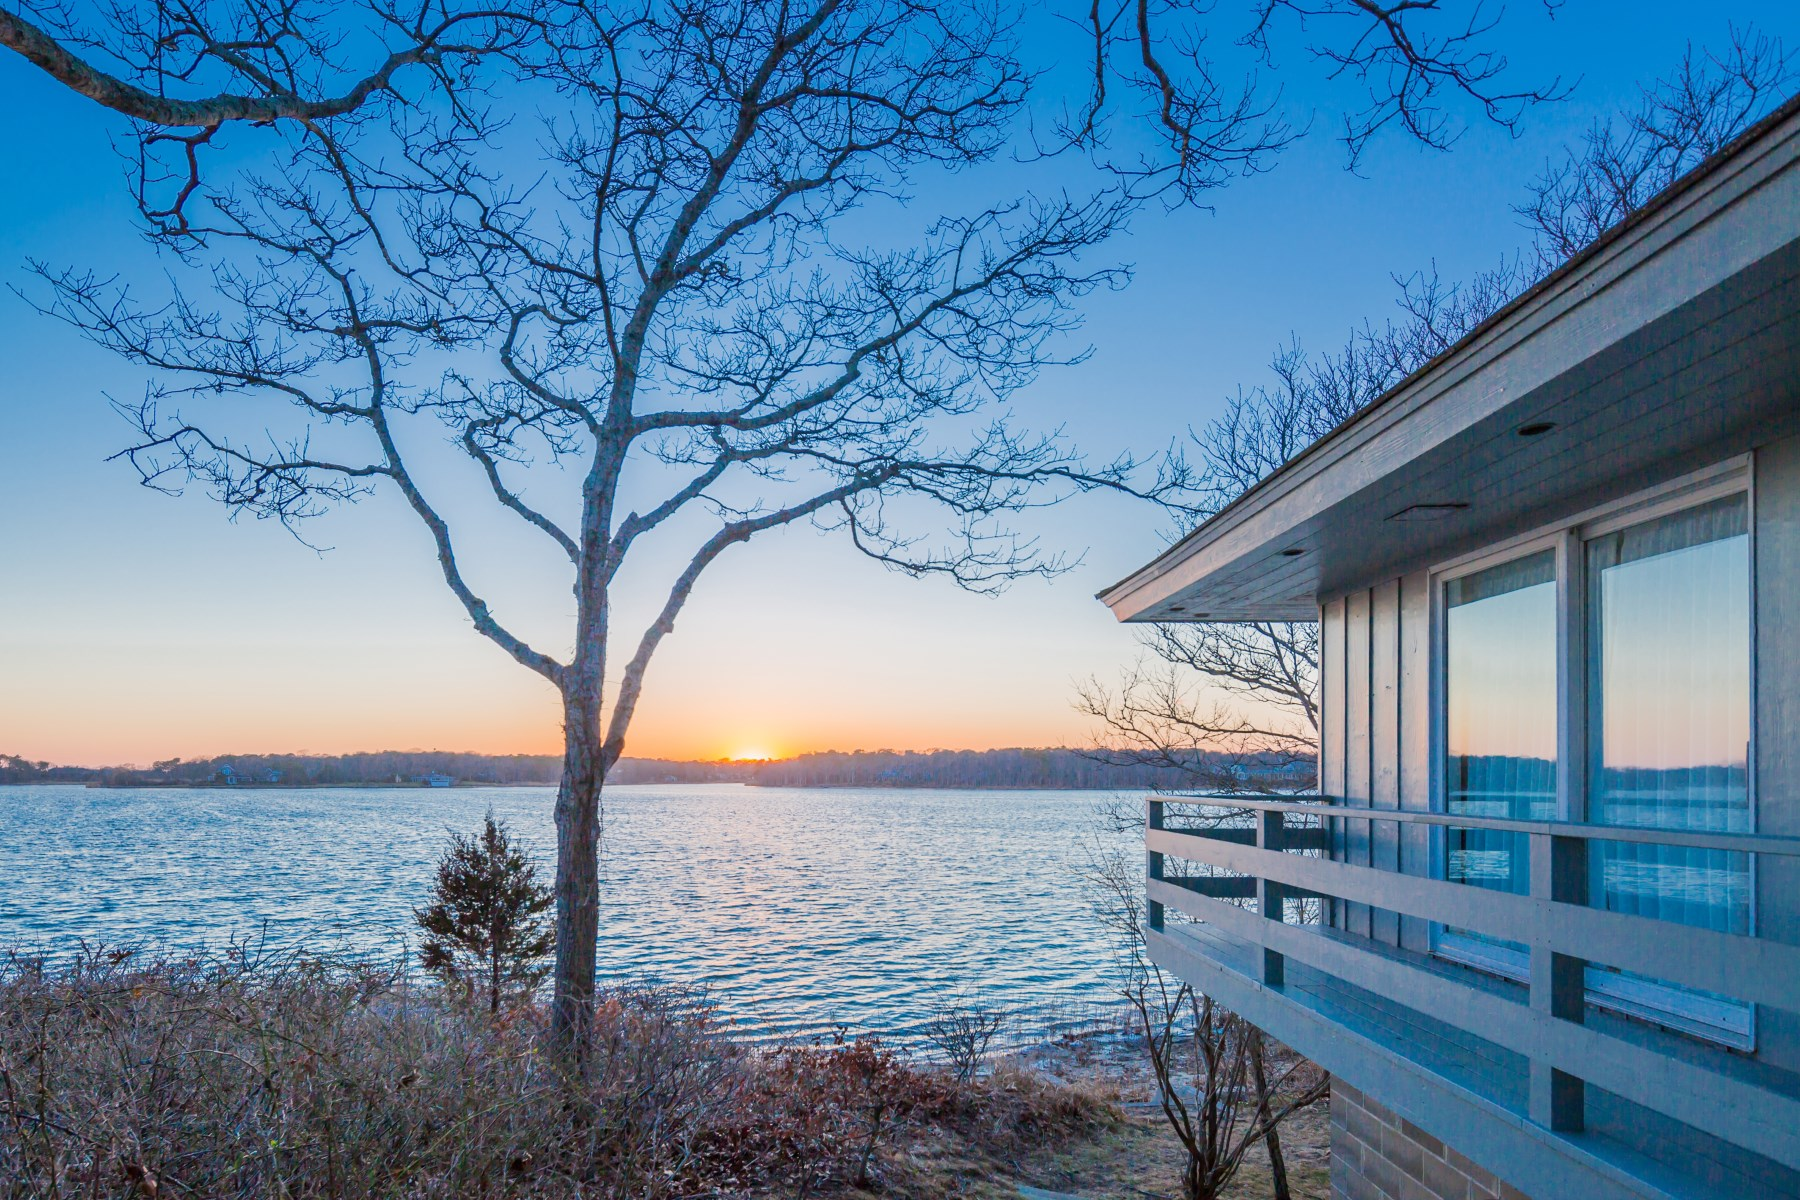 Single Family Home for Sale at Georgica Pond Cottage 106 Briar Patch Road East Hampton, New York 11937 United States